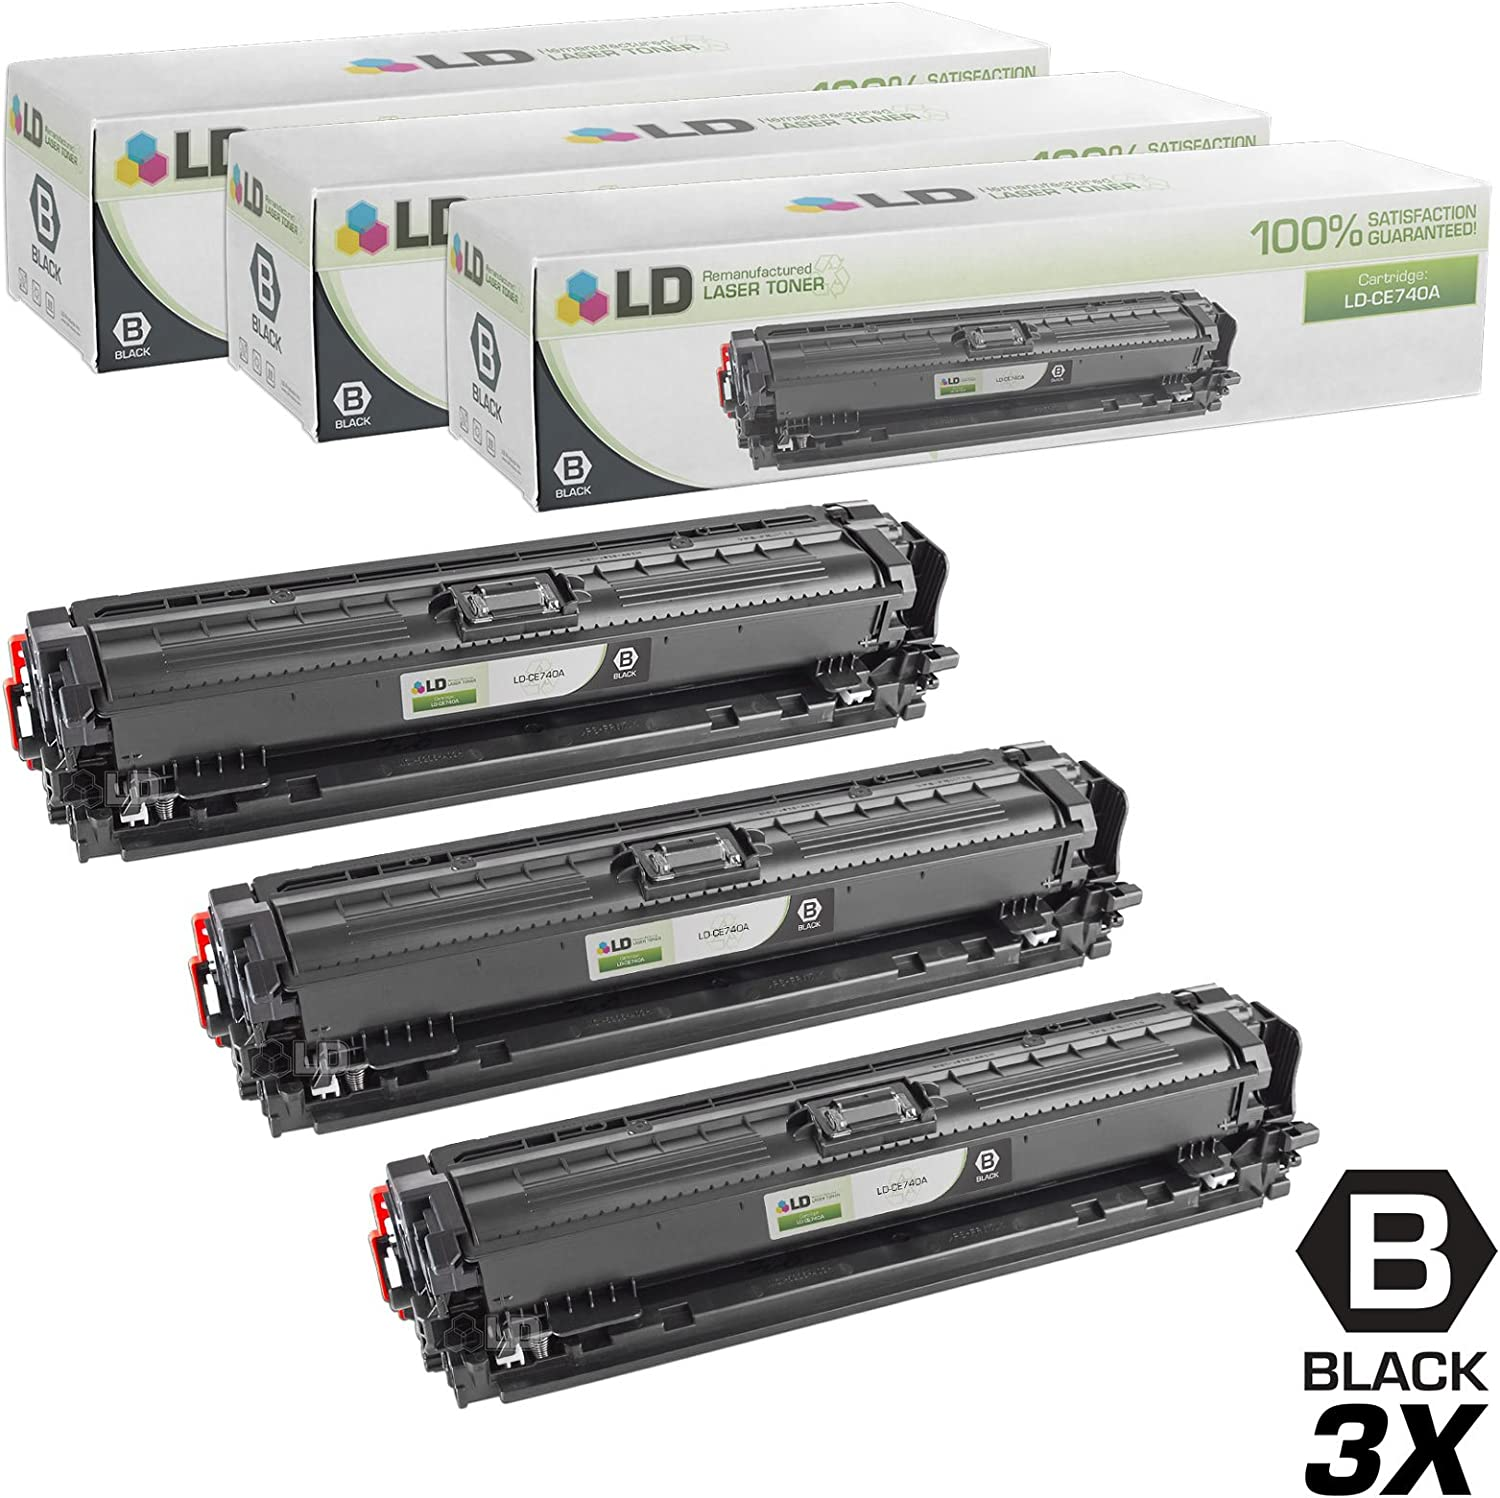 LD Remanufactured Toner Cartridge Replacement for HP 307A CE740A (Black, 3-Pack)